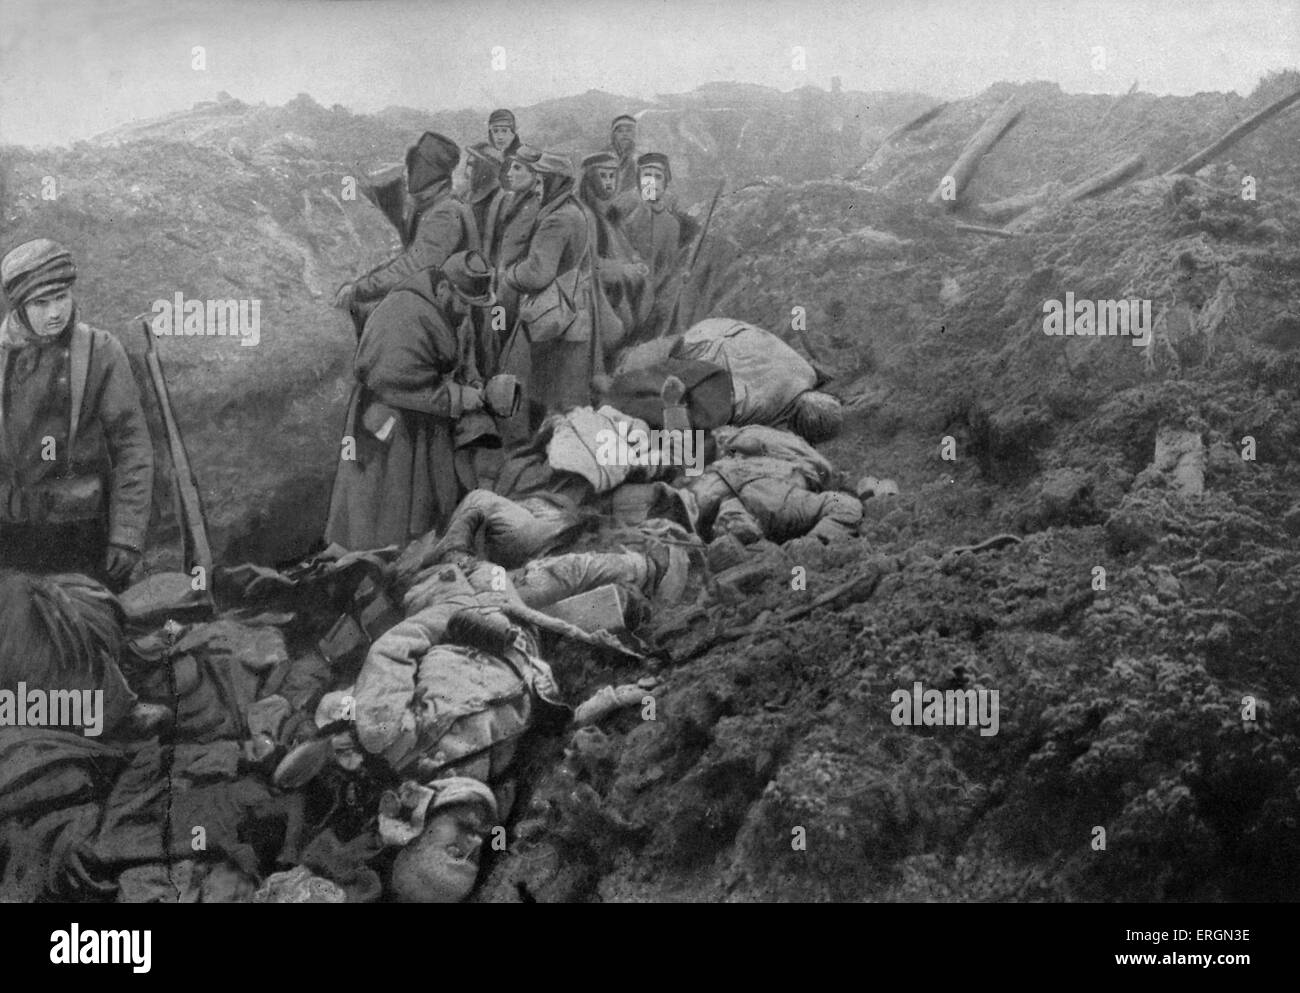 Hd Wallpapers Ww1 Trenches Diagram Wwi Trench Get Free High Quality